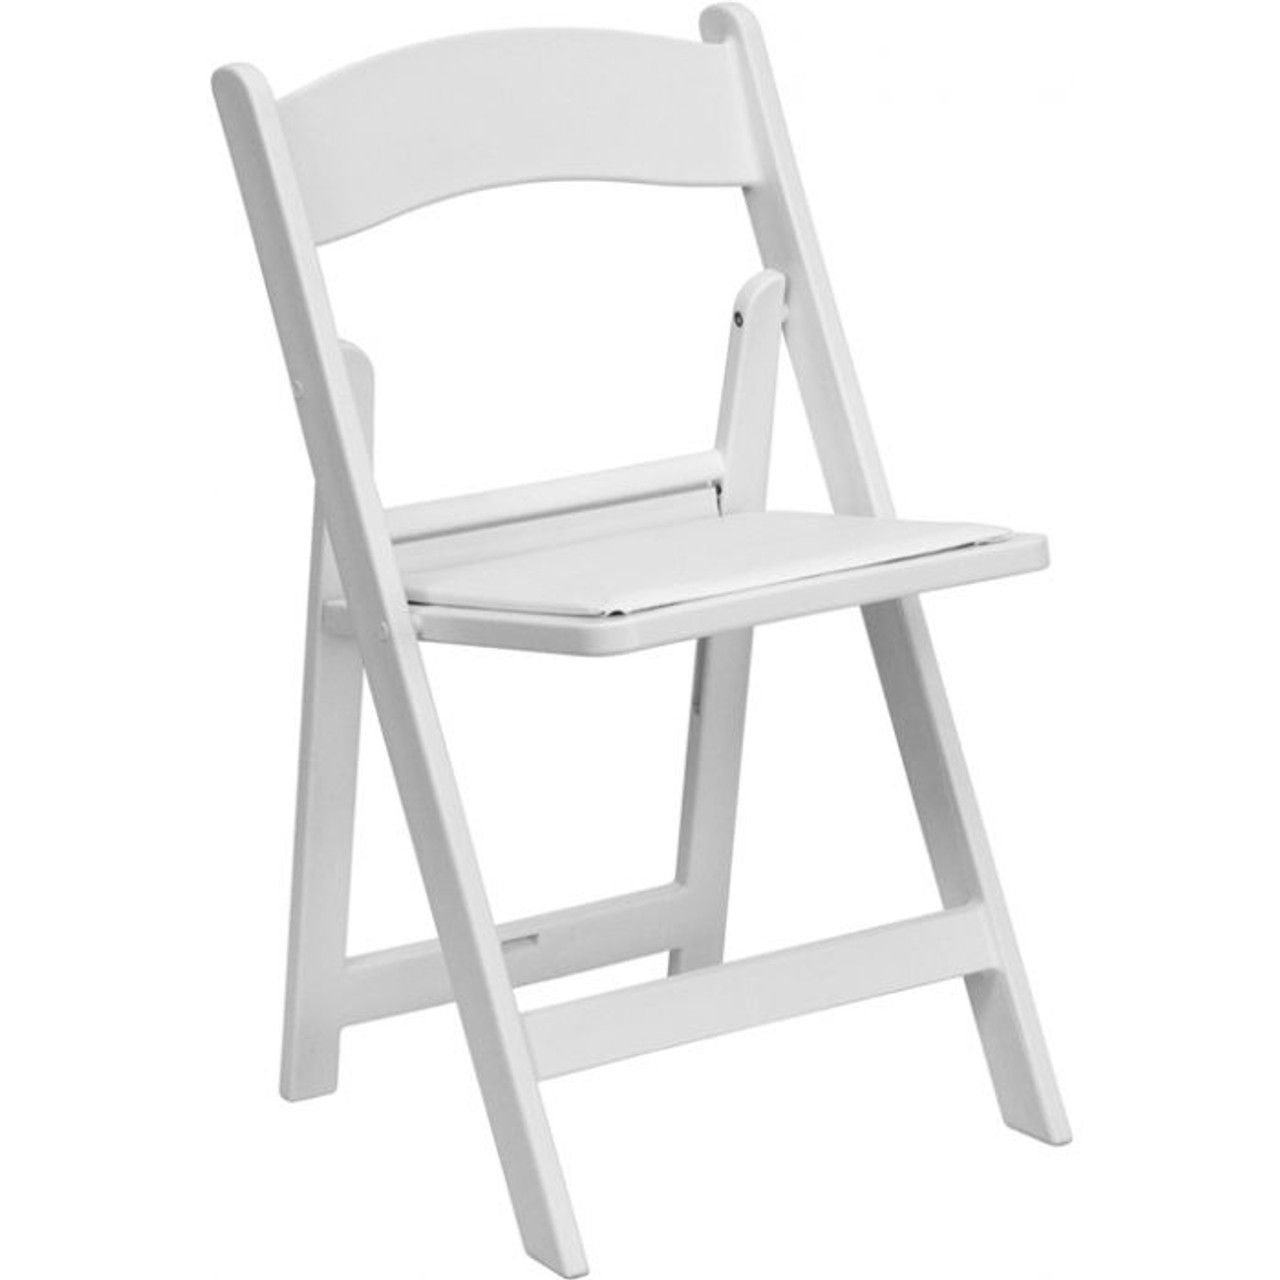 Incredible Folding Padded Chair White Resin Squirreltailoven Fun Painted Chair Ideas Images Squirreltailovenorg